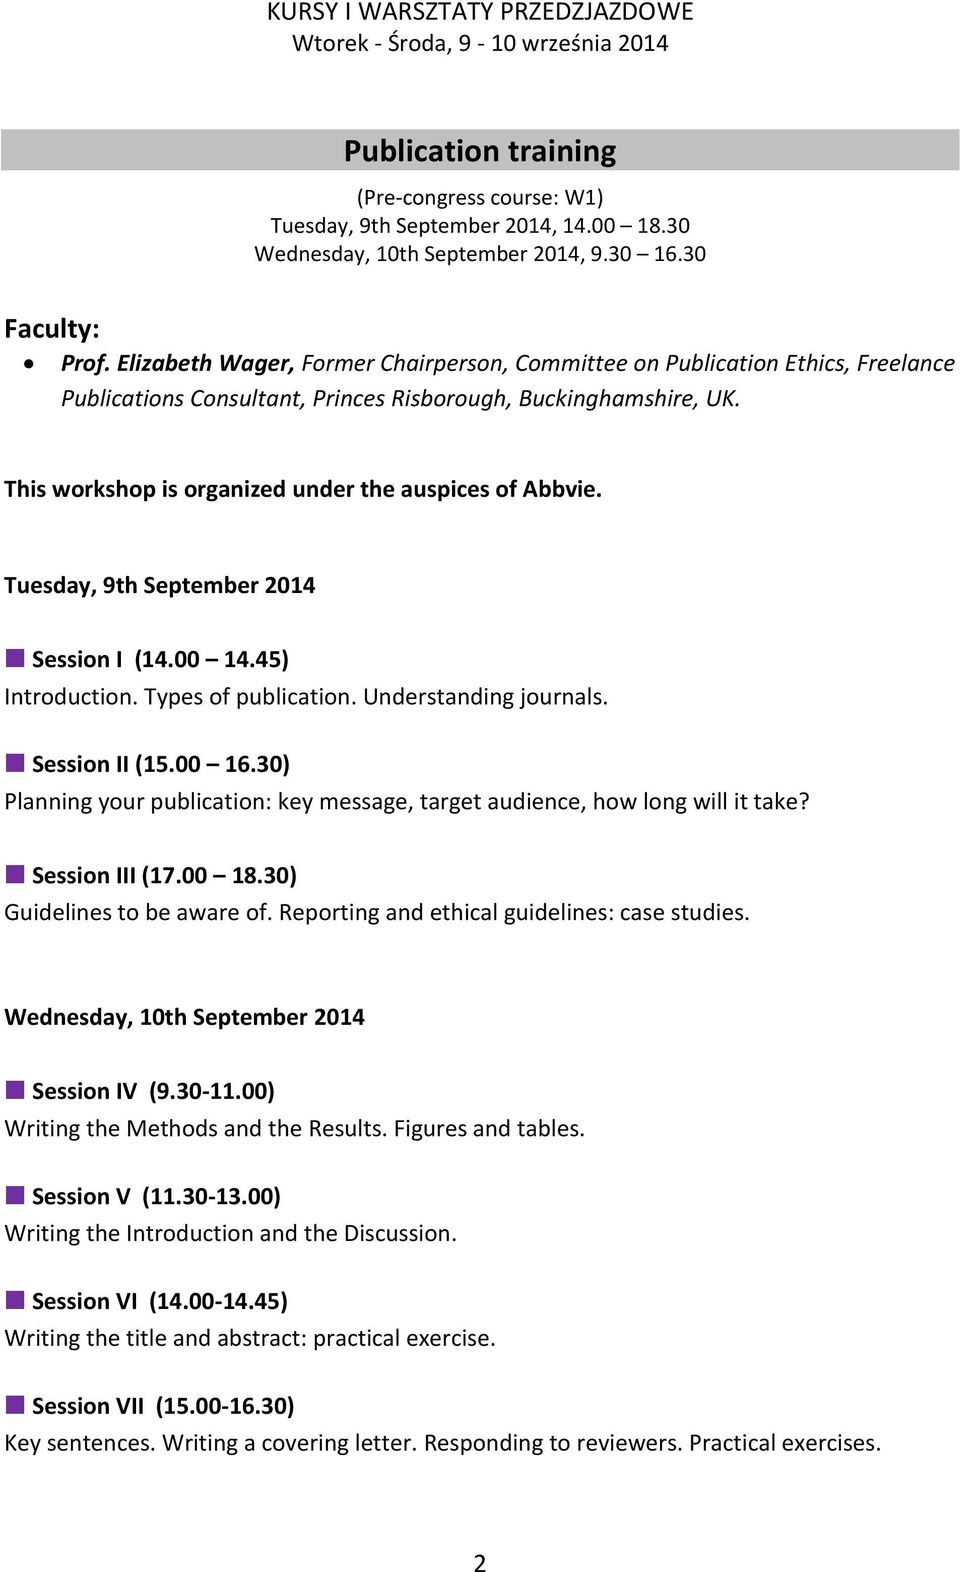 This workshop is organized under the auspices of Abbvie. Tuesday, 9th September 2014 Session I (14.00 14.45) Introduction. Types of publication. Understanding journals. Session II (15.00 16.